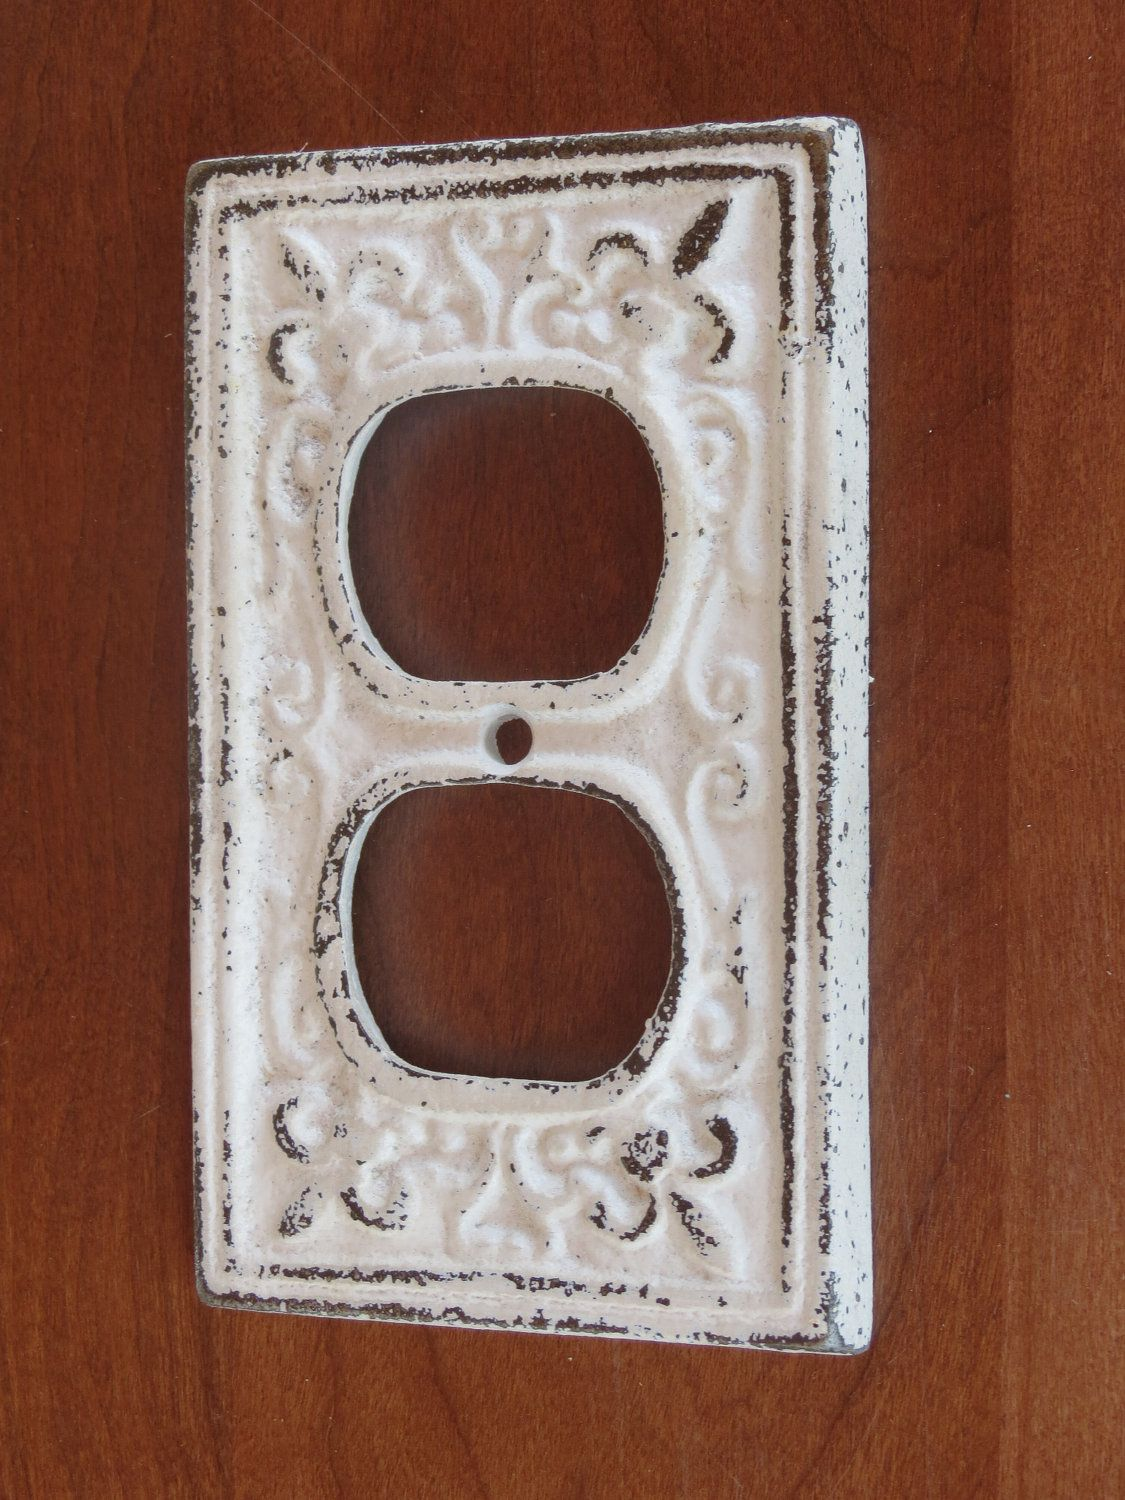 Decorative Electrical Outlet Covers Antique White Decorative Electrical Outlet Plate Plugin Cover